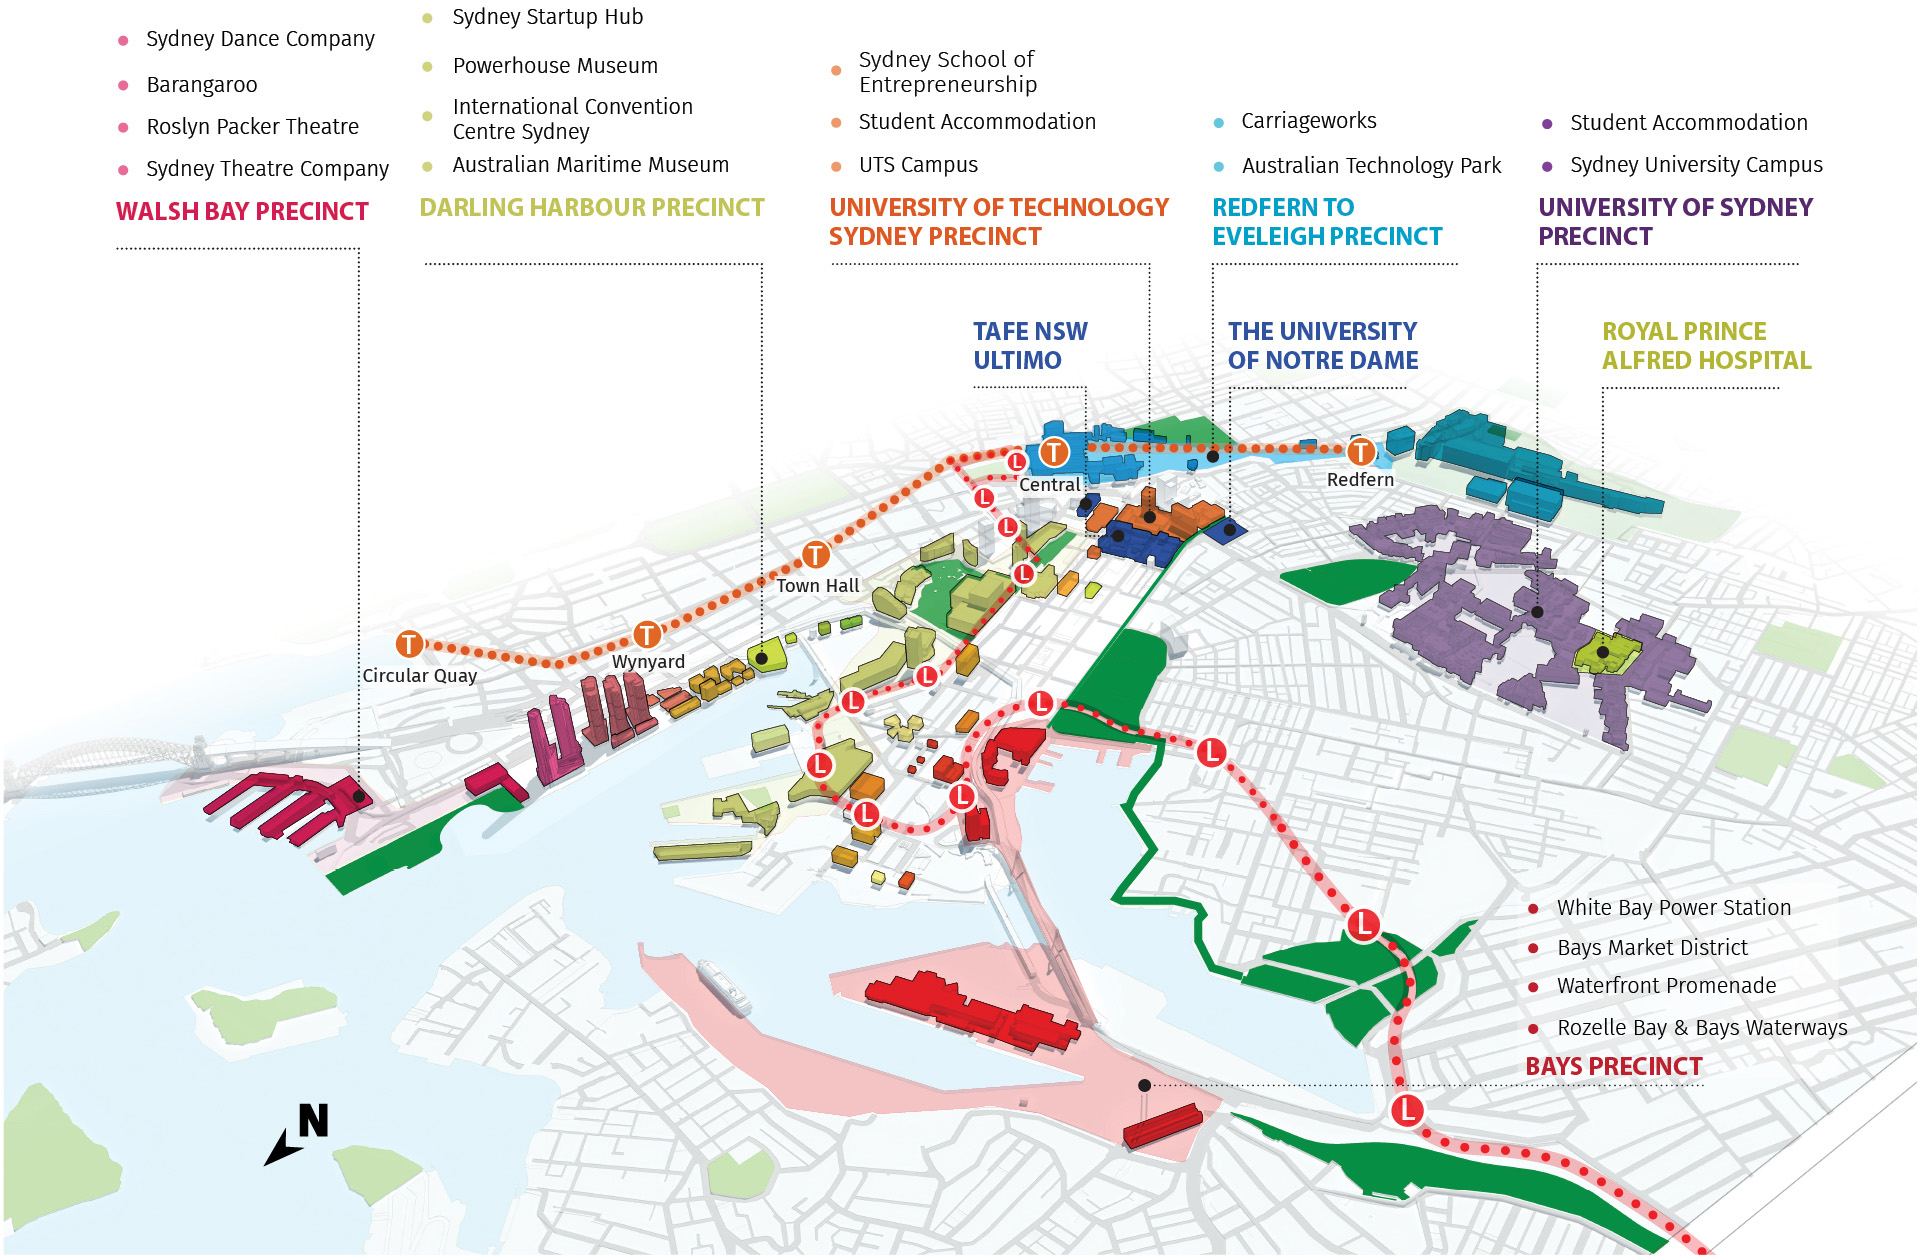 Figure 32: Diagram showing Innovation Corridor in the Harbour CBD.